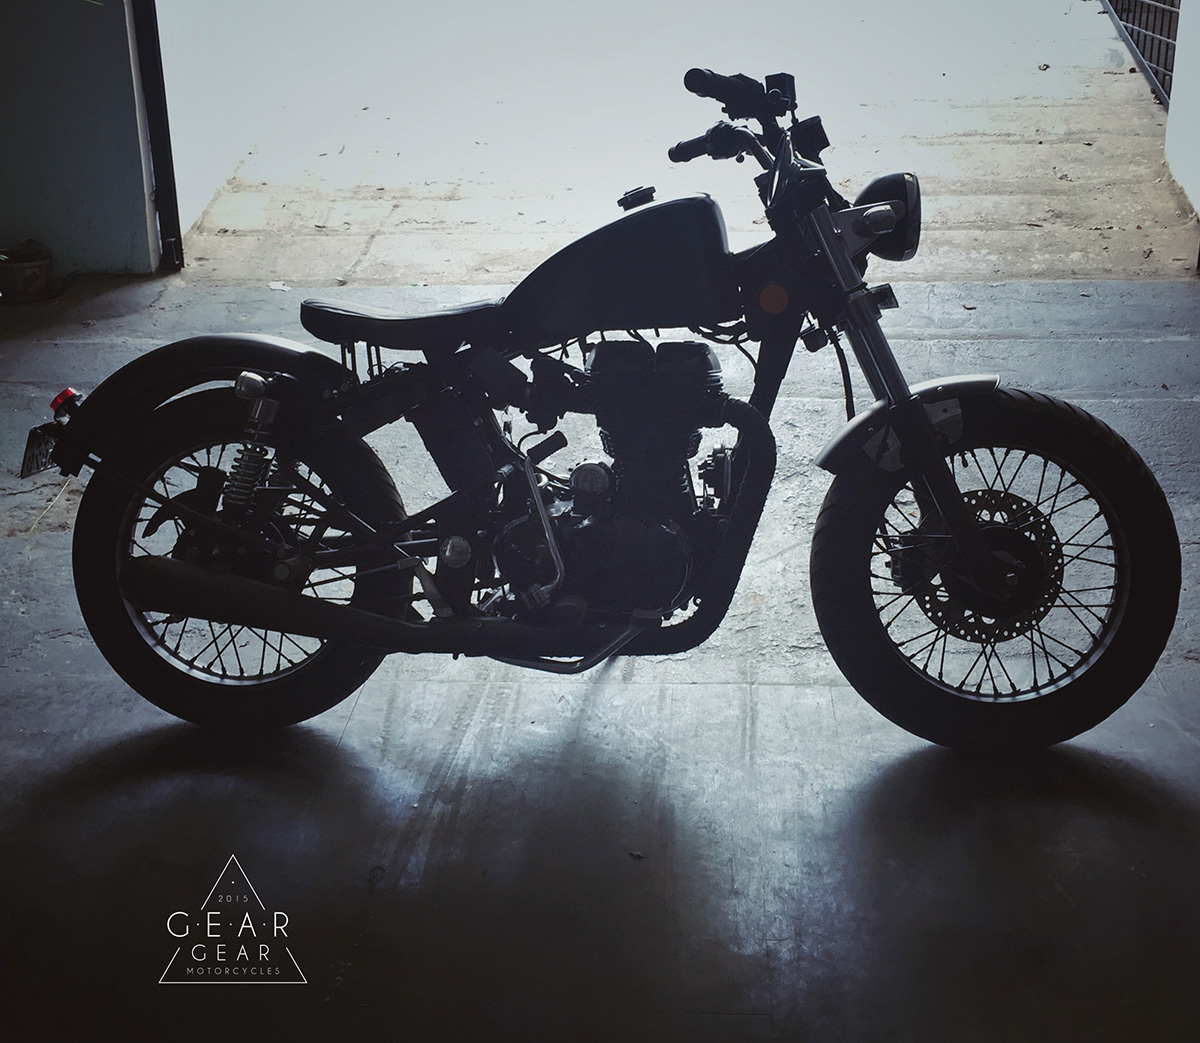 Modified Clean Bobber on Classic 350 - Gear Gear Motorcycles